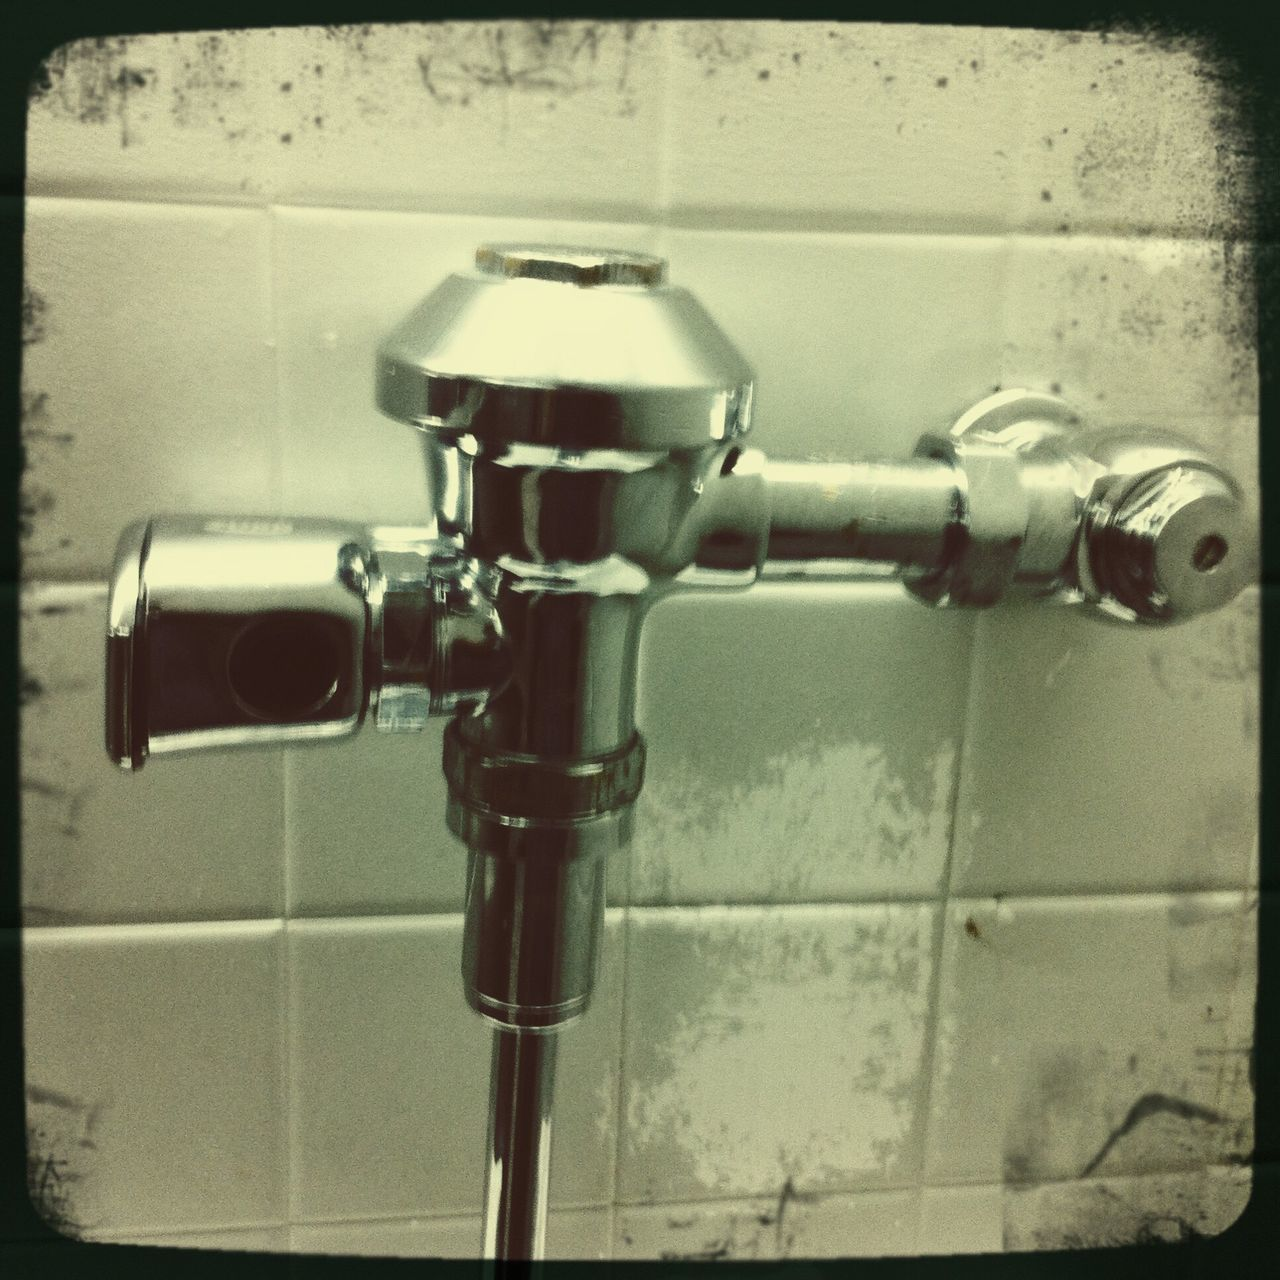 bathroom, domestic bathroom, tap, pipe - tube, close-up, faucet, indoors, connection, hygiene, no people, tile, day, water, shower